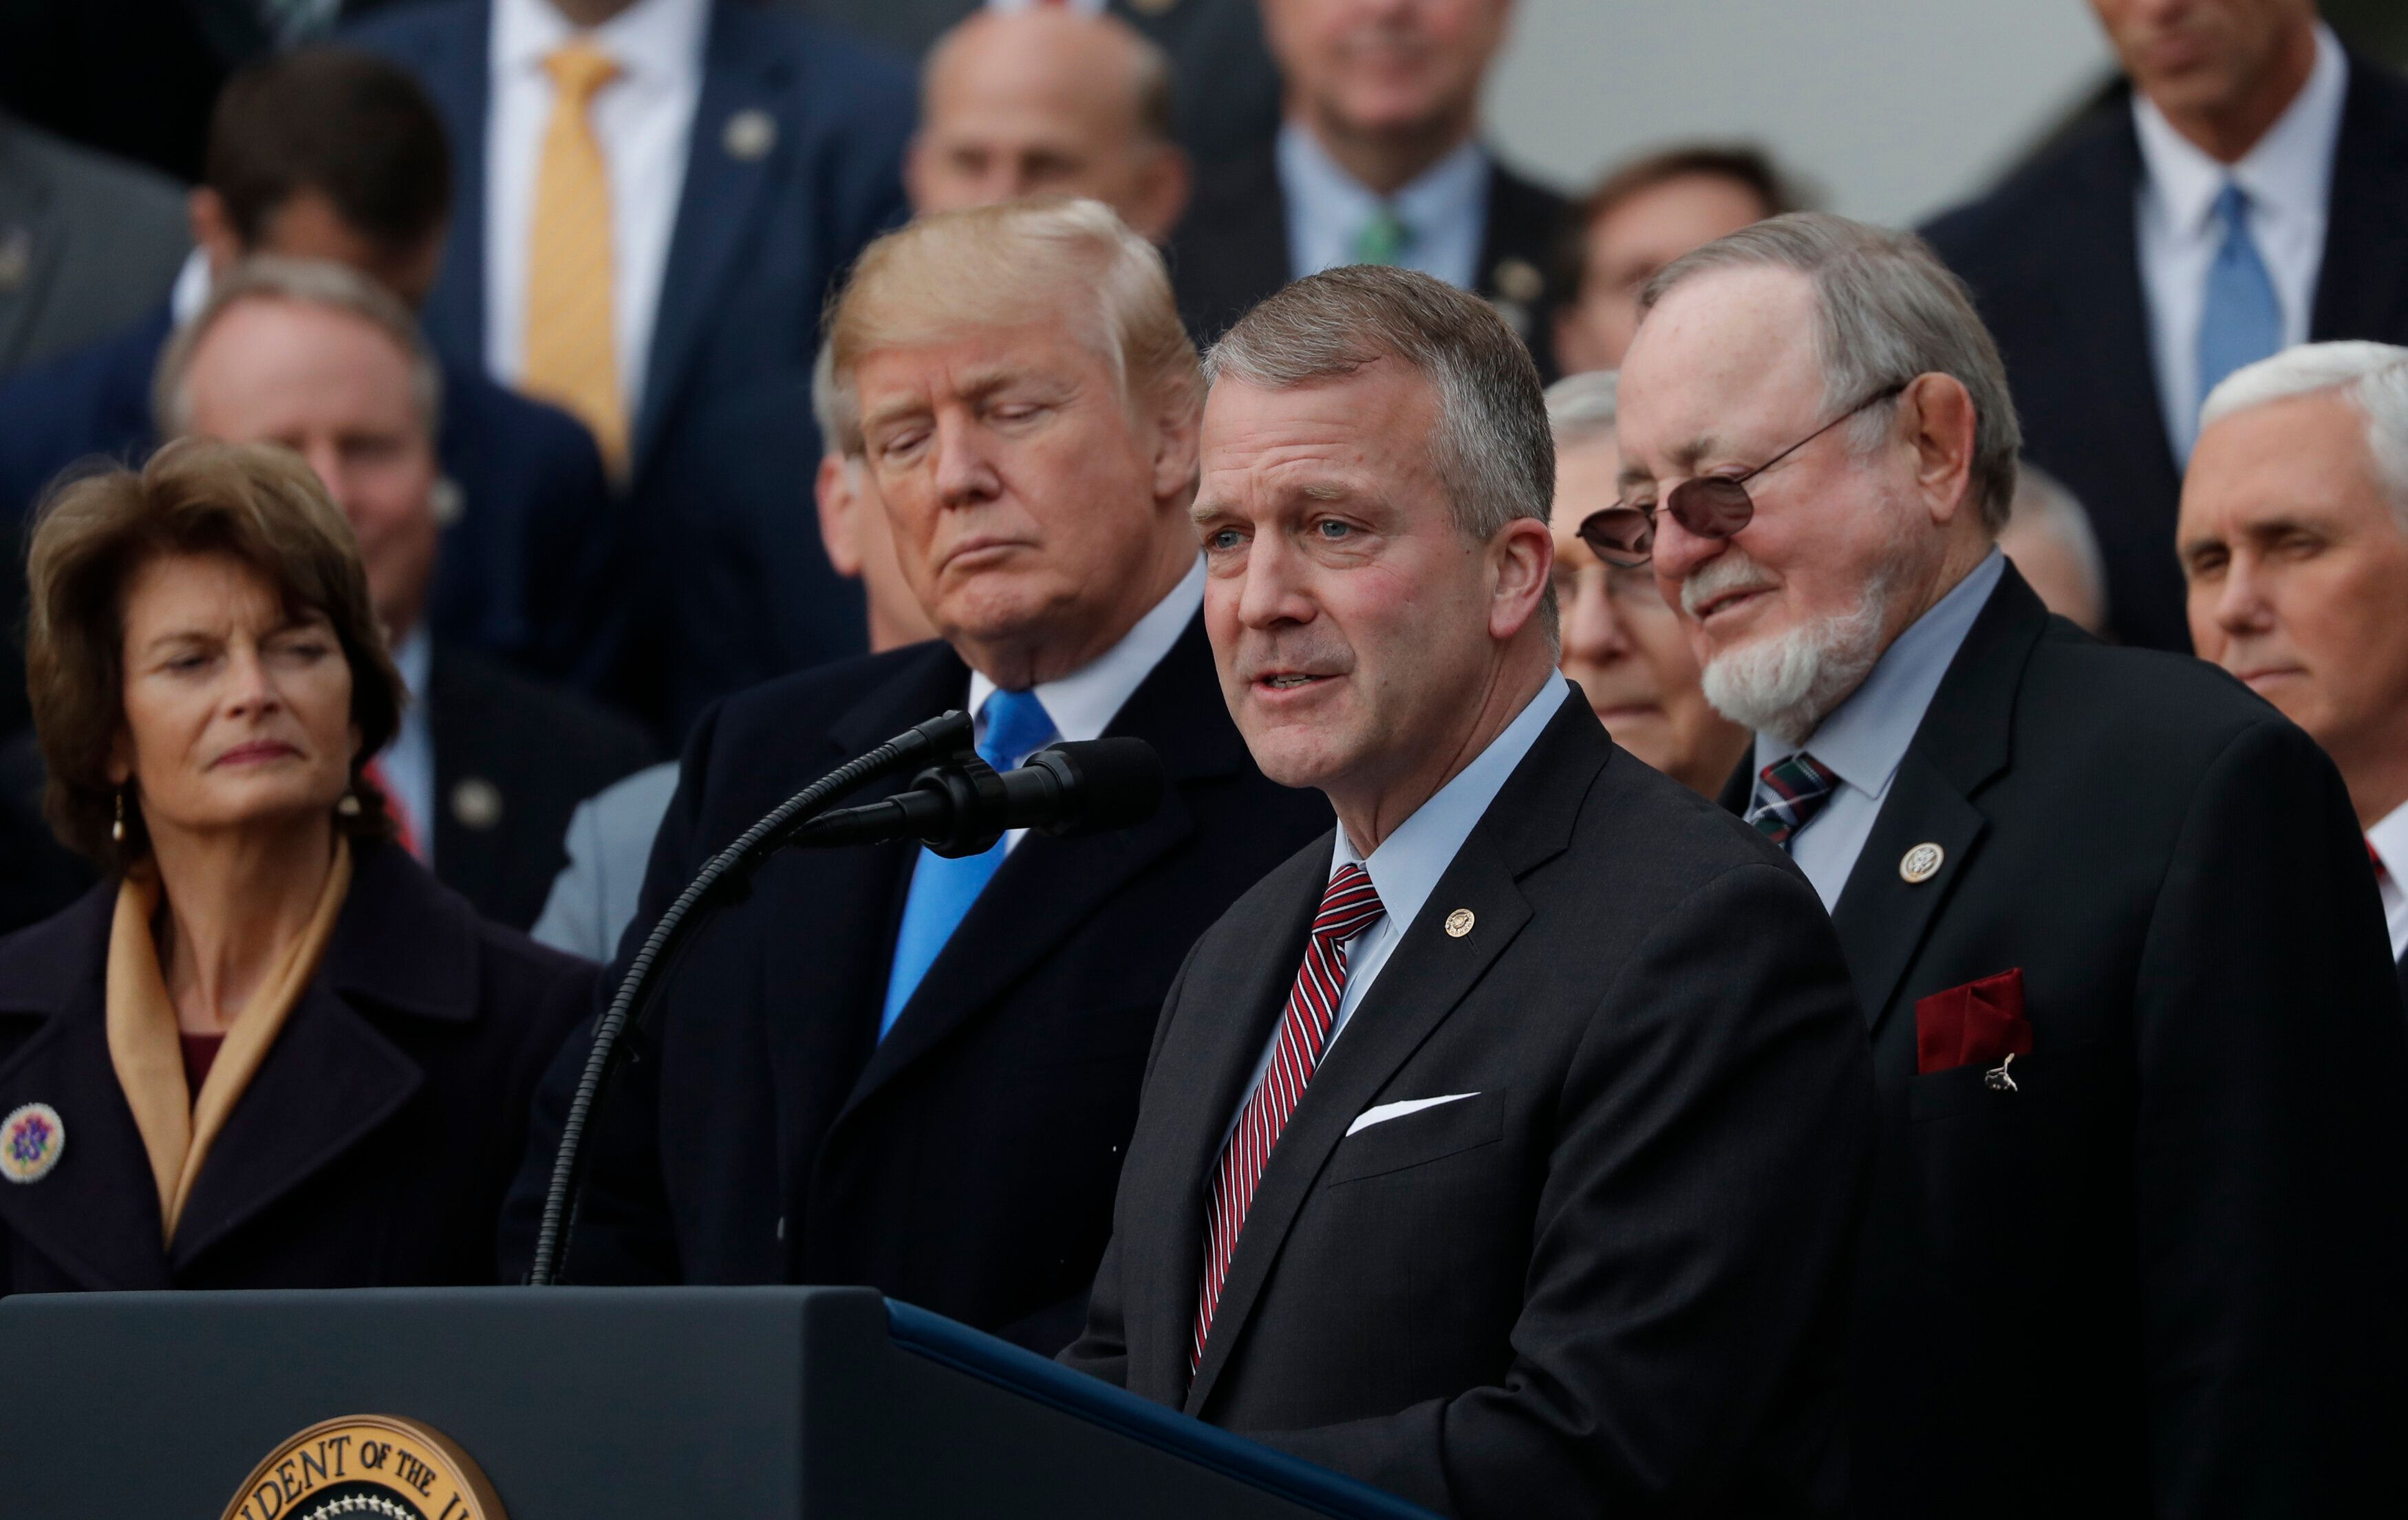 Sen. Sullivan, foreground, speaks at a ceremony celebrating Donald Trump's tax cuts. His fortunes could depend on whether Ala